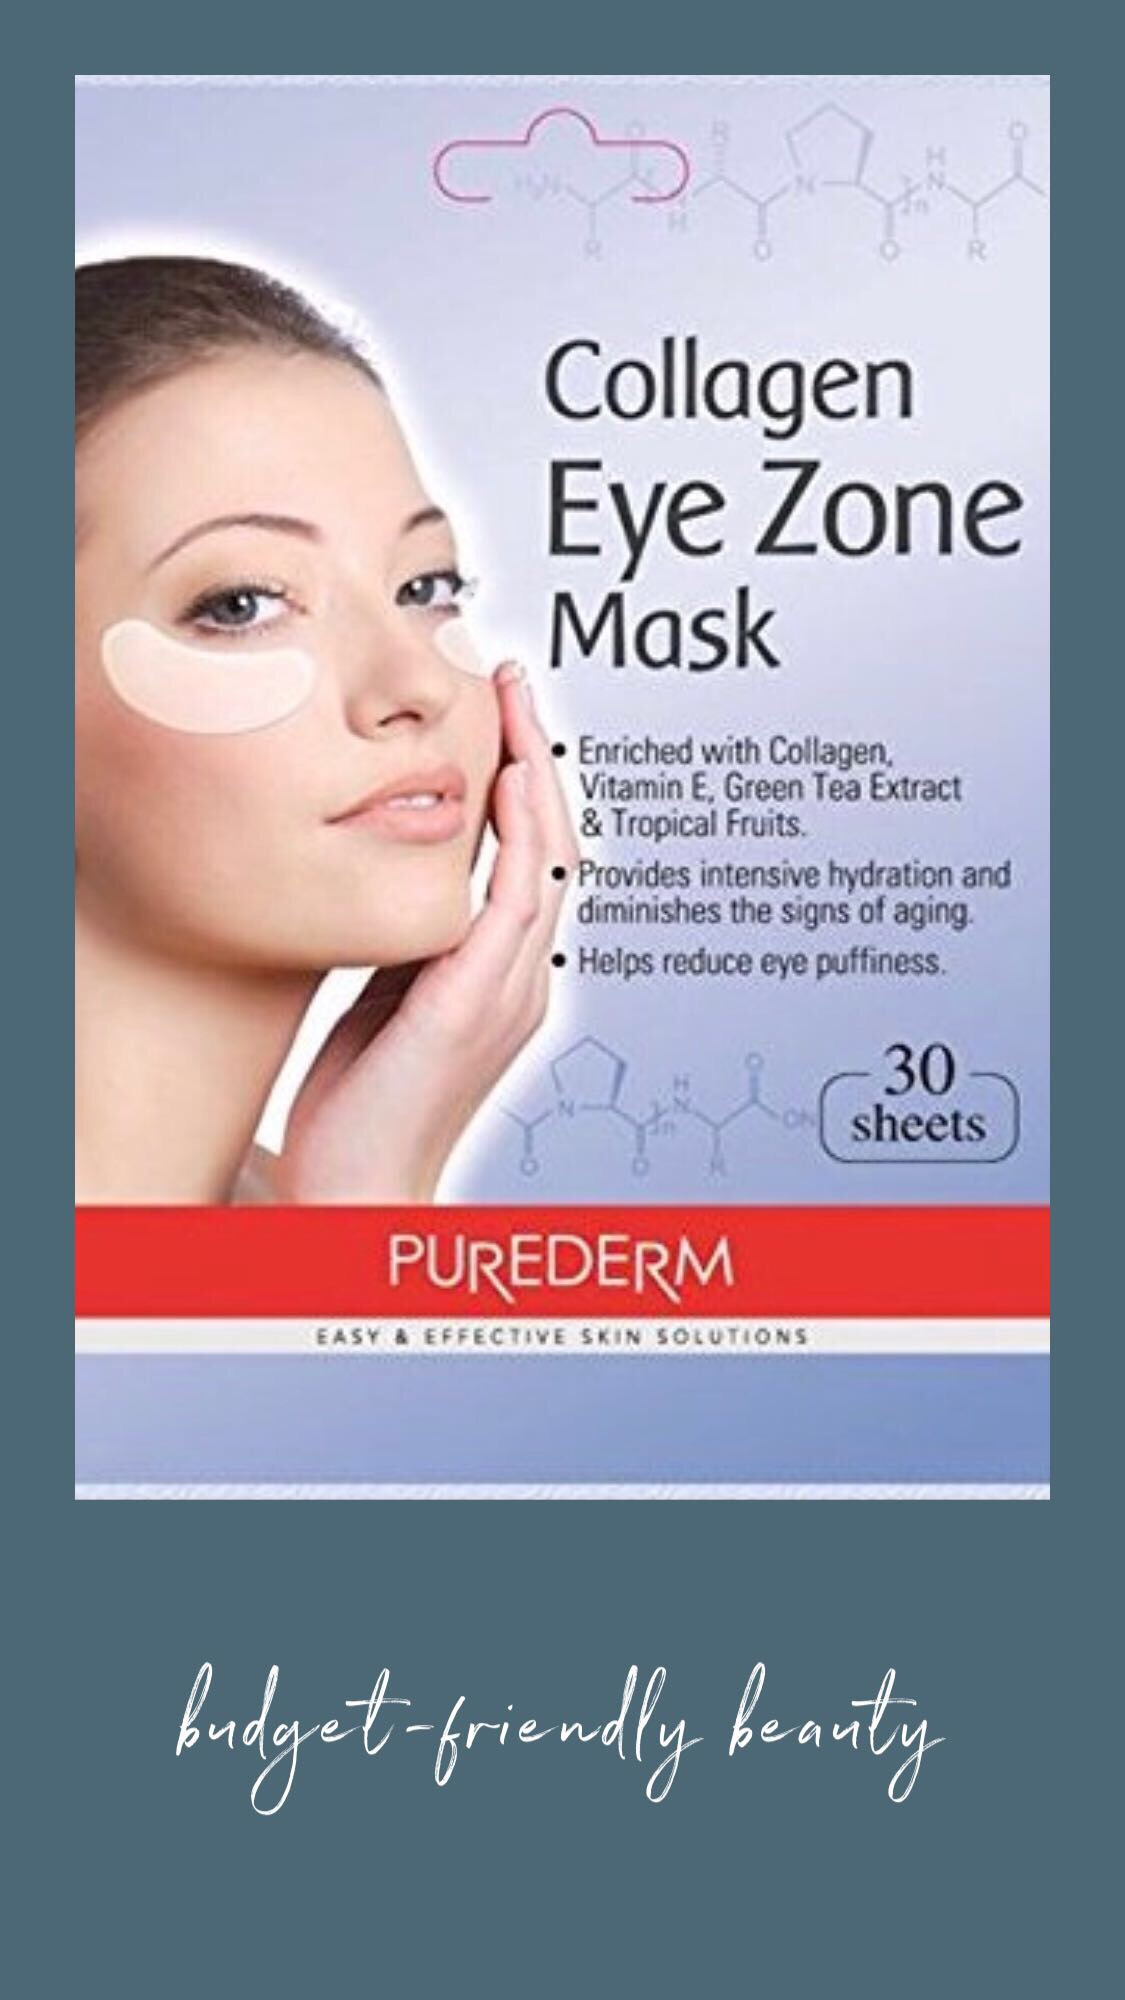 Swoon Worthy Friday Favorites Kozy And Co Purederm Eye Mask 5 I Dont Know How The Weather Has Been Where You Are But Here Weve Sweltering In Mid To High 90s Lately This Dress Is Perfect For Hot Summer